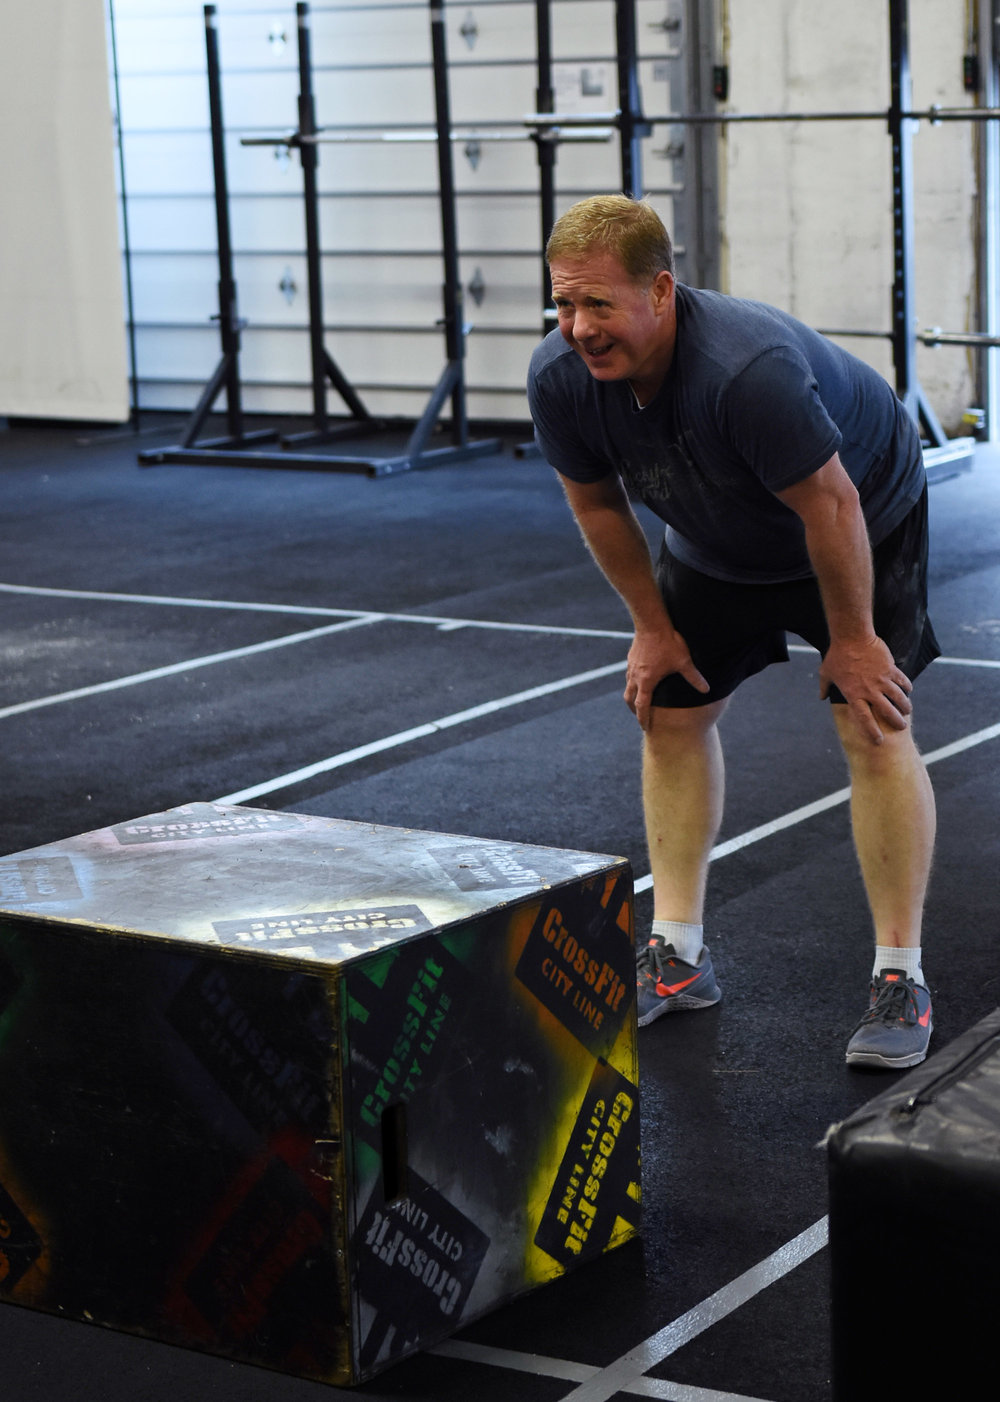 Box jumps train our explosive hip extension--to get the most out of a box jump workout, send your hips back while standing behind the box, like in a kettlebell swing. Then squeeze your glutes and straighten your legs to launch off of the floor and onto the box. Finish from a quarter squat to standing tall.